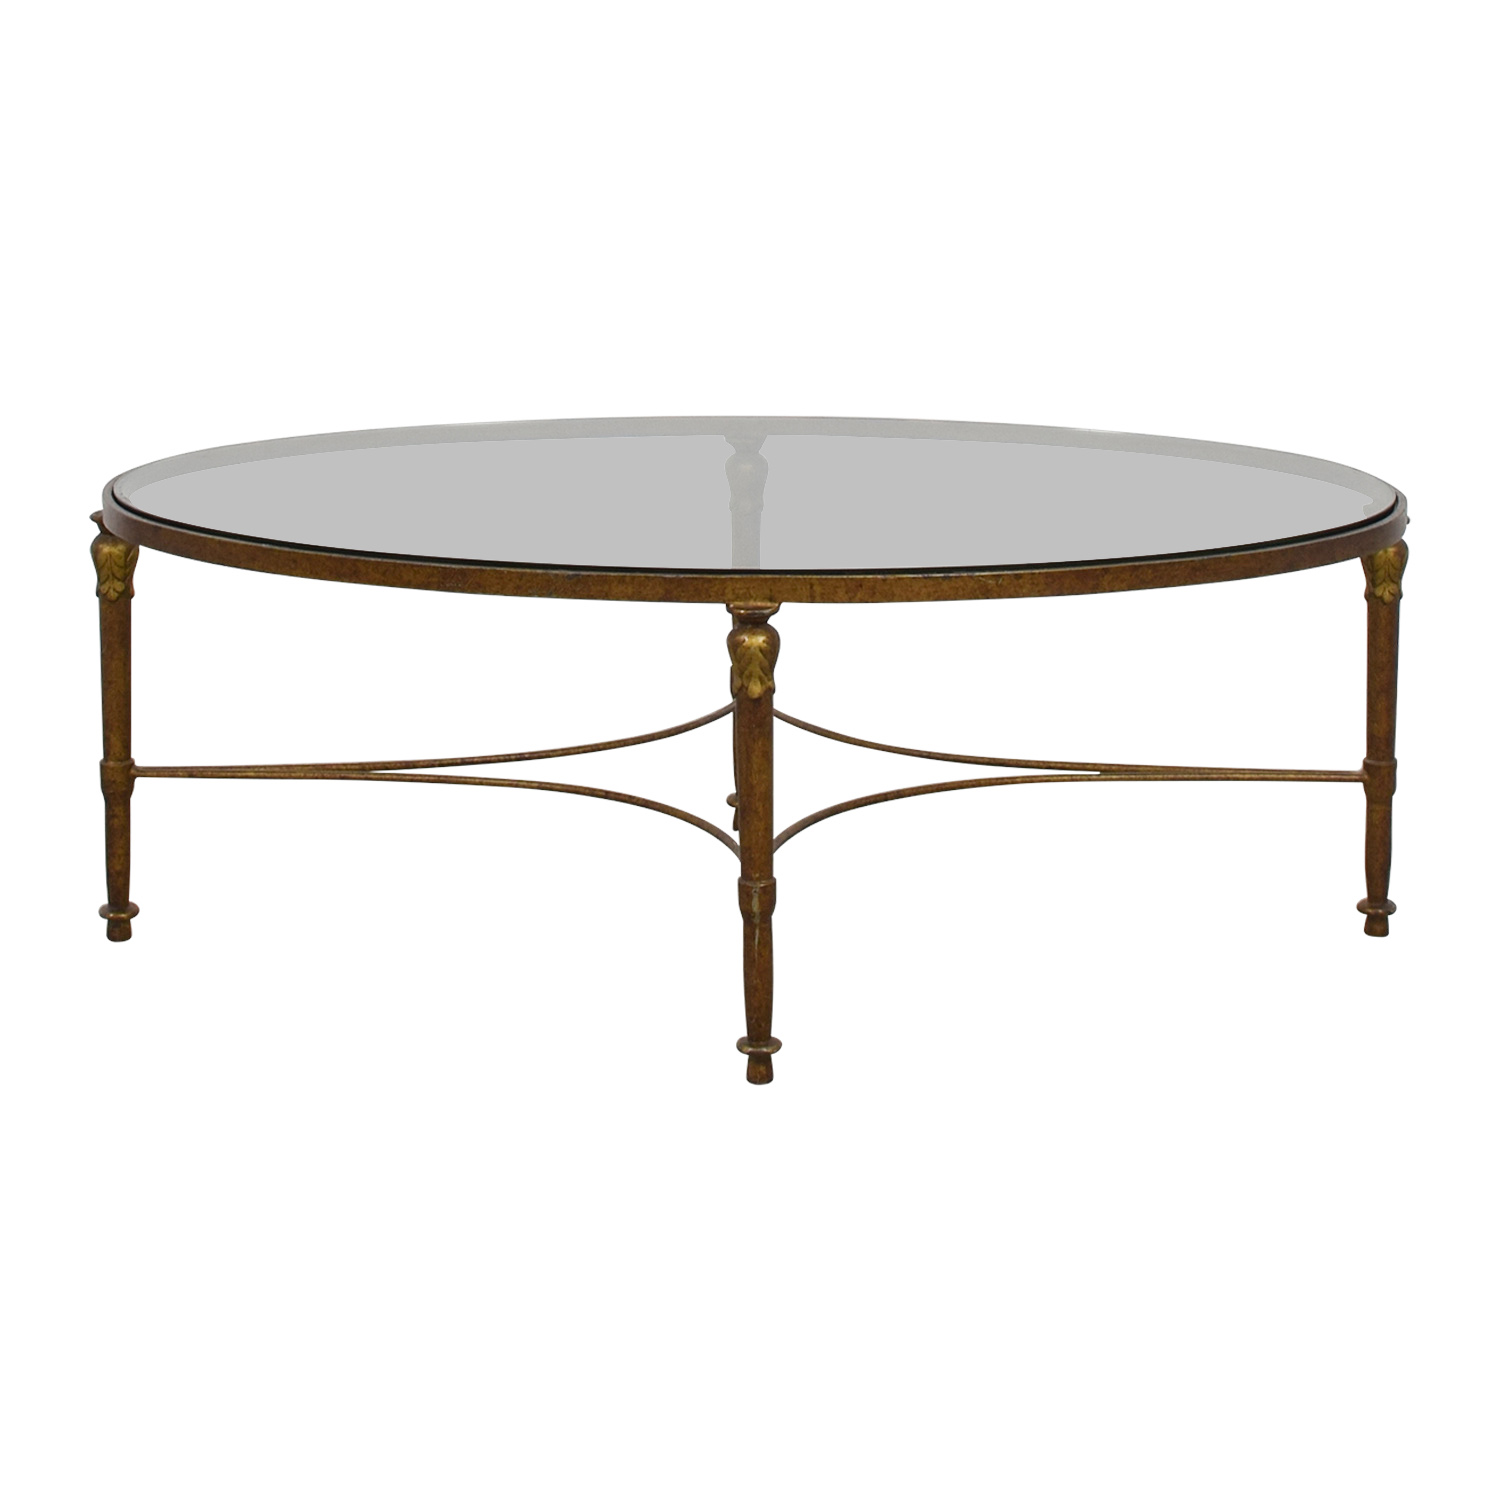 Oval Wrought Iron Framed Glass Table Coffee Tables